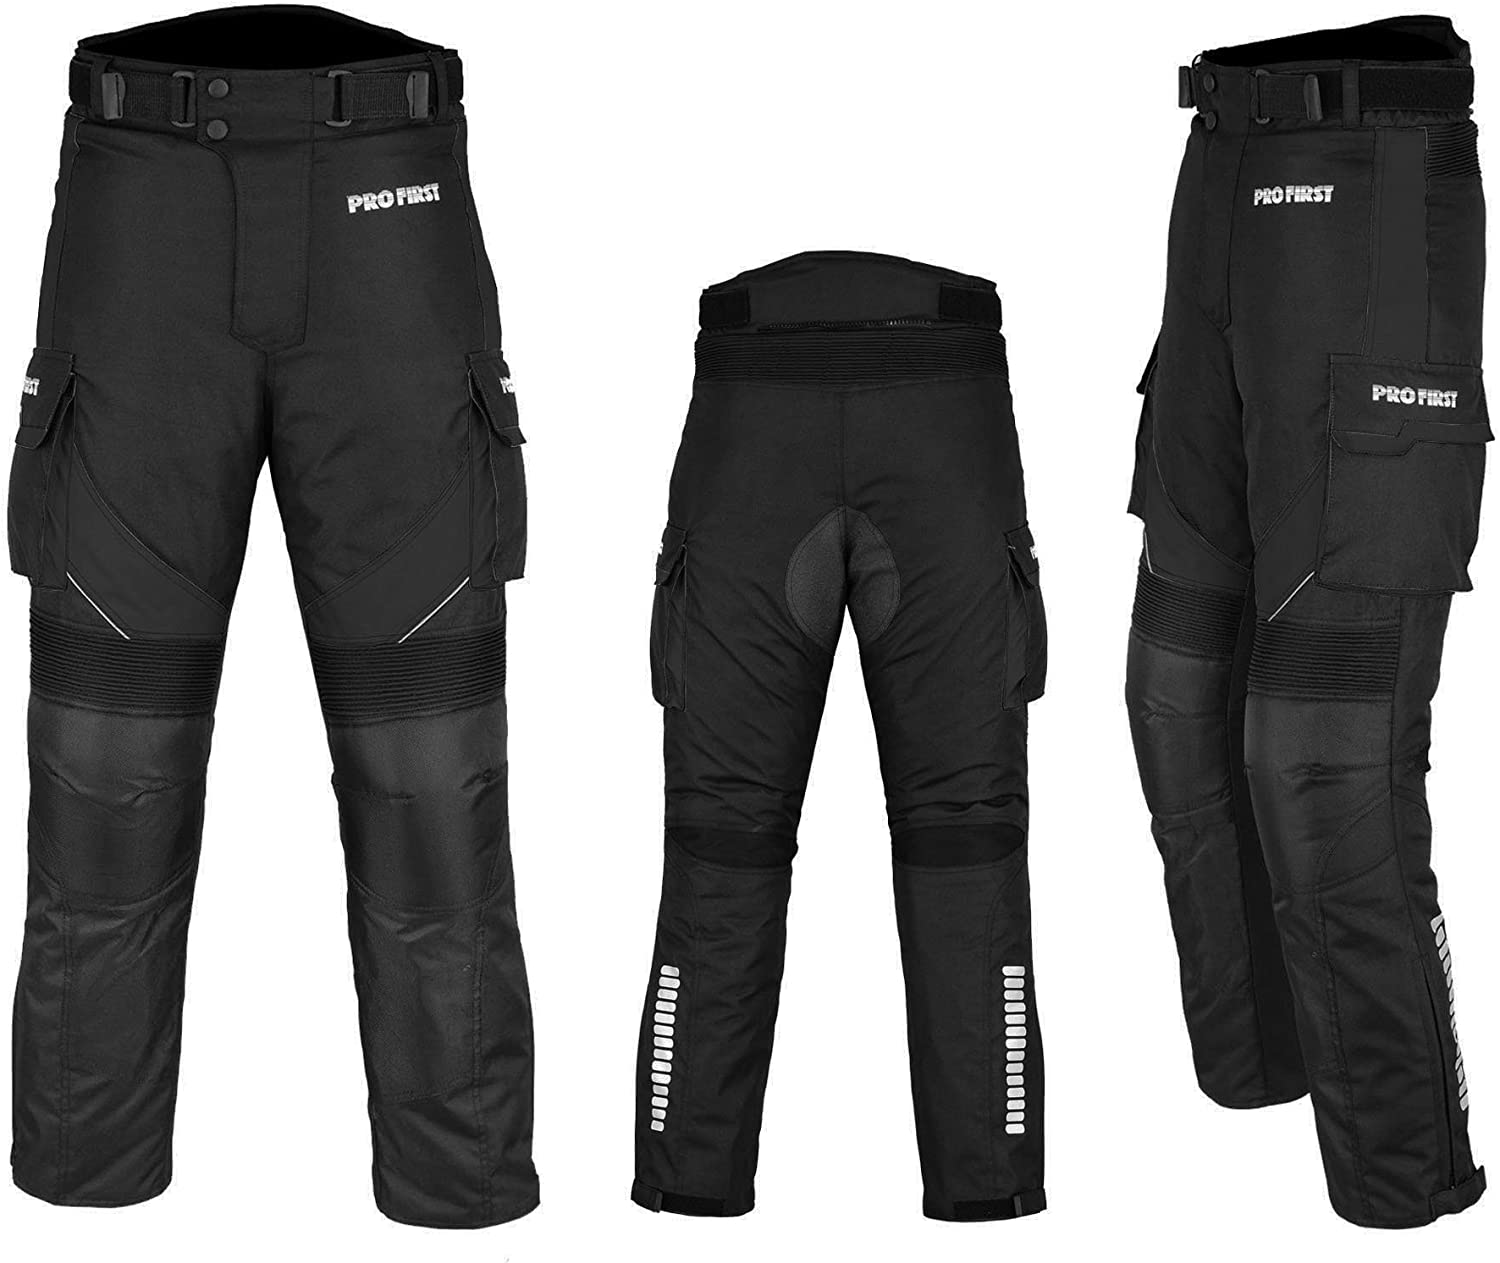 "Racing Touring Event- Gloves Balaclava Trouser A Full Set of Waterproof Motorbike Motorcycle Moped 2 Piece Suit in Cardura Fabric and CE Approved Armor Blue /–3XL-29/"" Leg Boots Jacket"